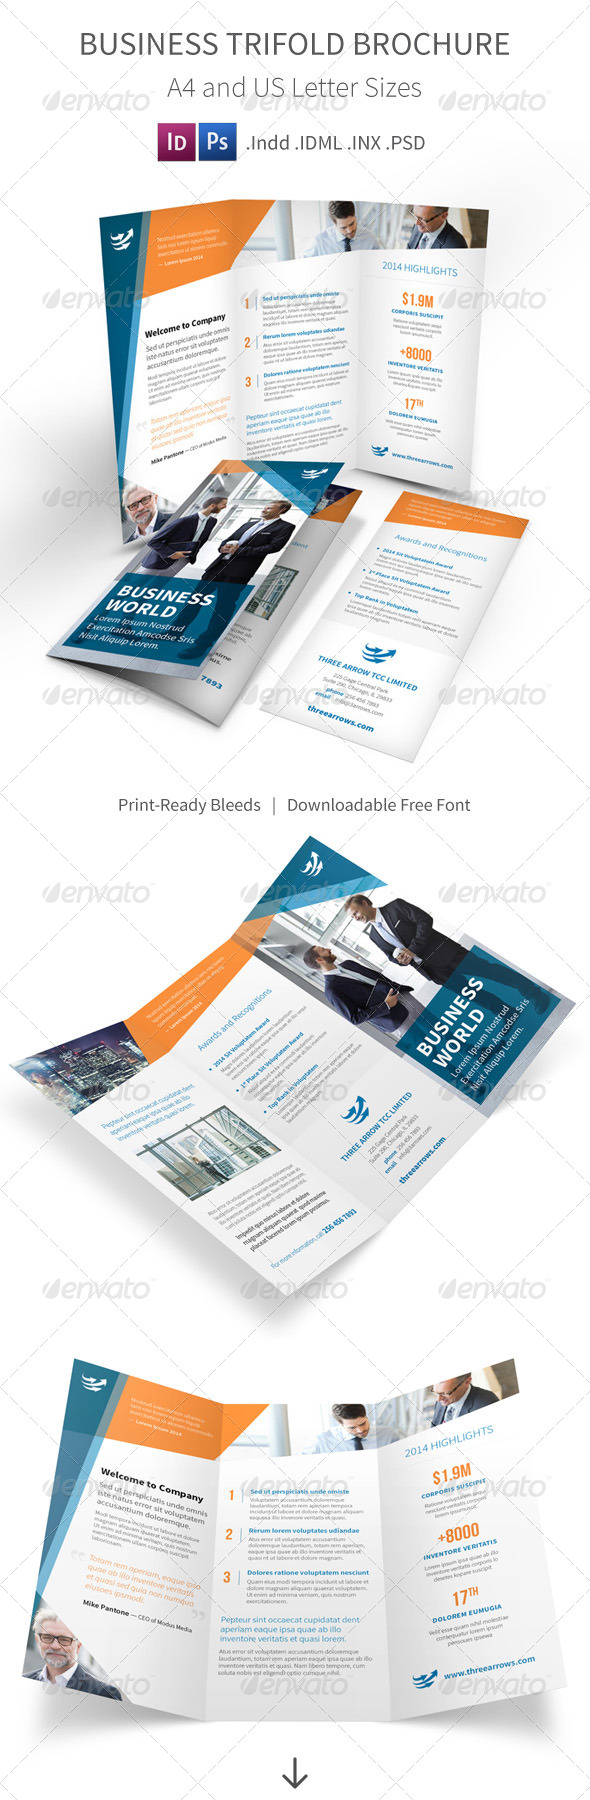 GraphicRiver Business Trifold Brochure 8103488